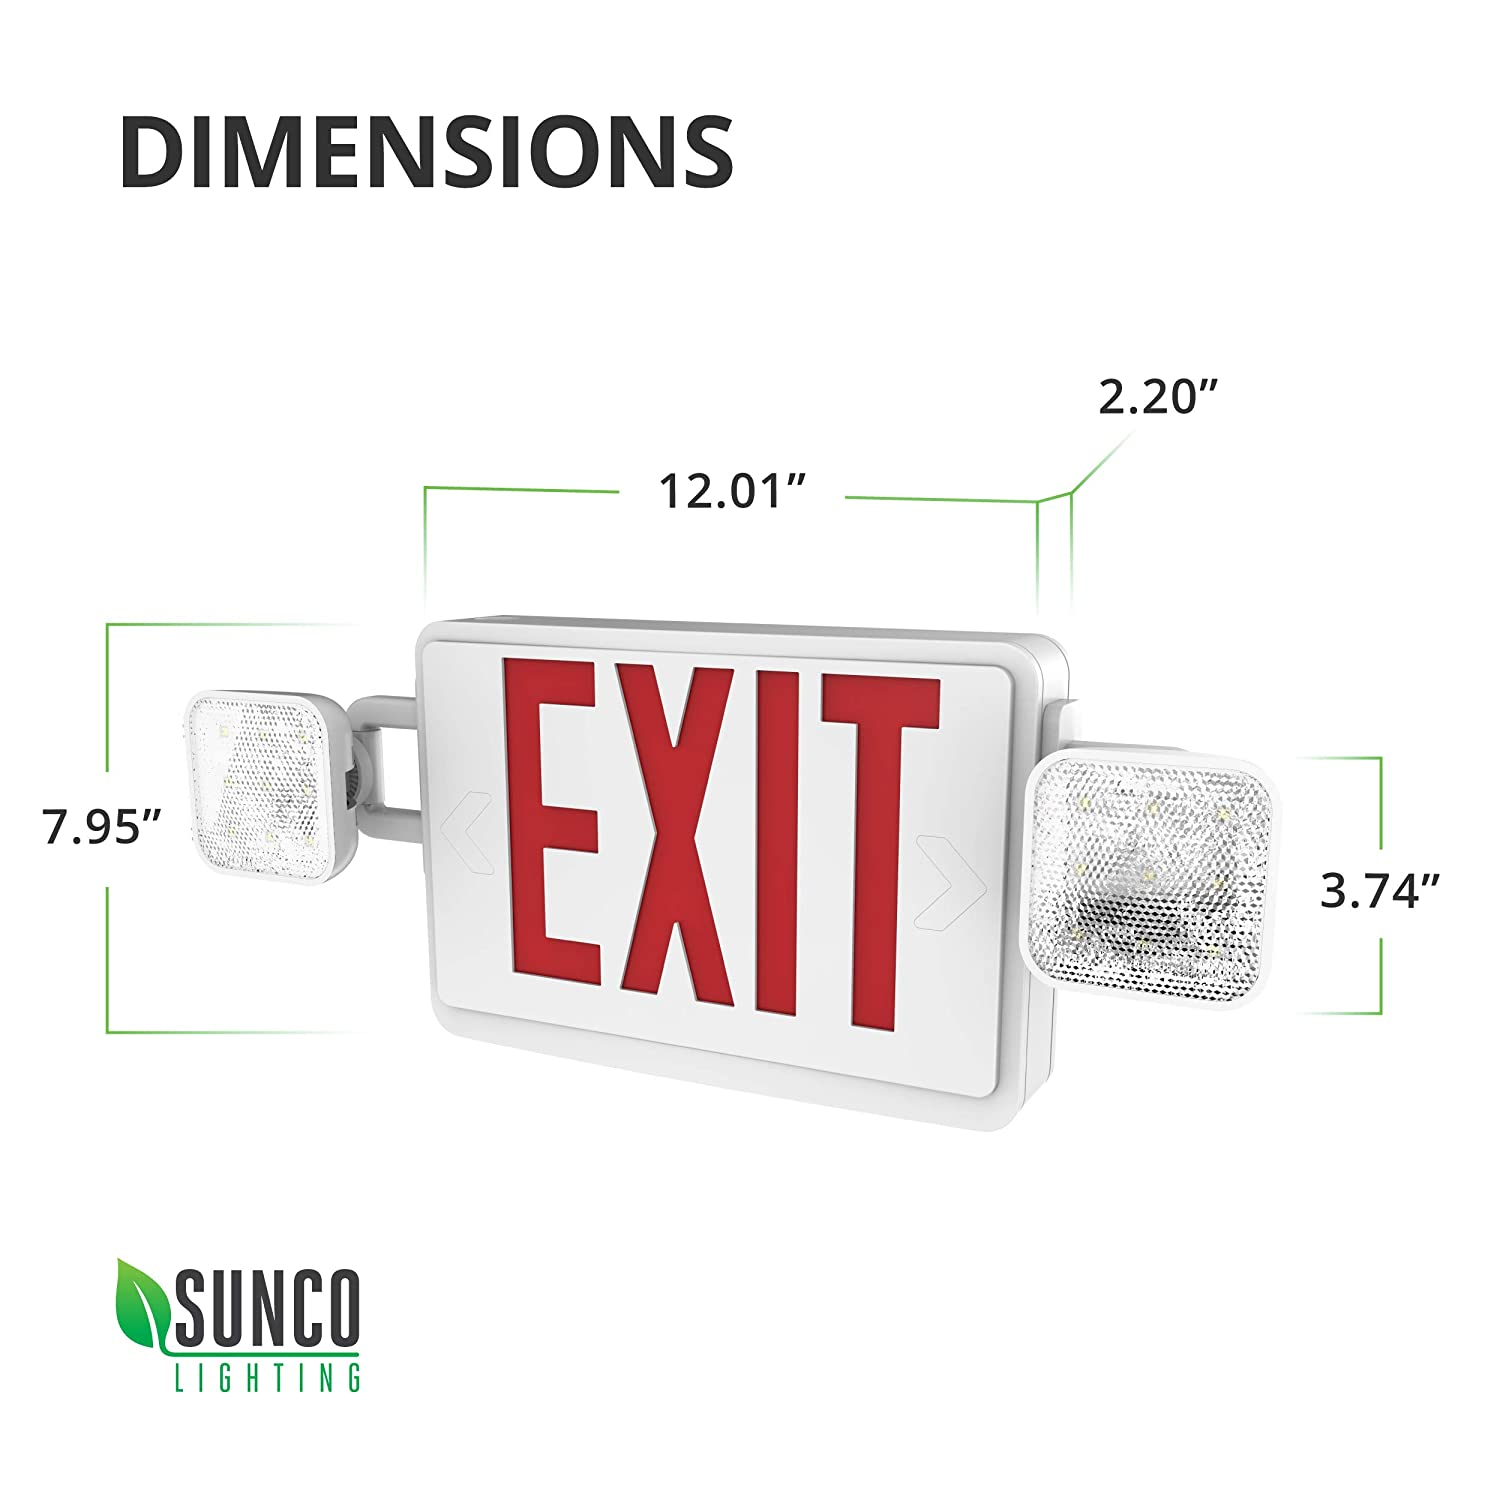 Fire Resistant Sunco Lighting 6 Pack Double Sided LED Emergency EXIT Sign US Standard Red Letter Emergency Exit Lighting Two LED Flood Lights Backup Battery Commercial Grade